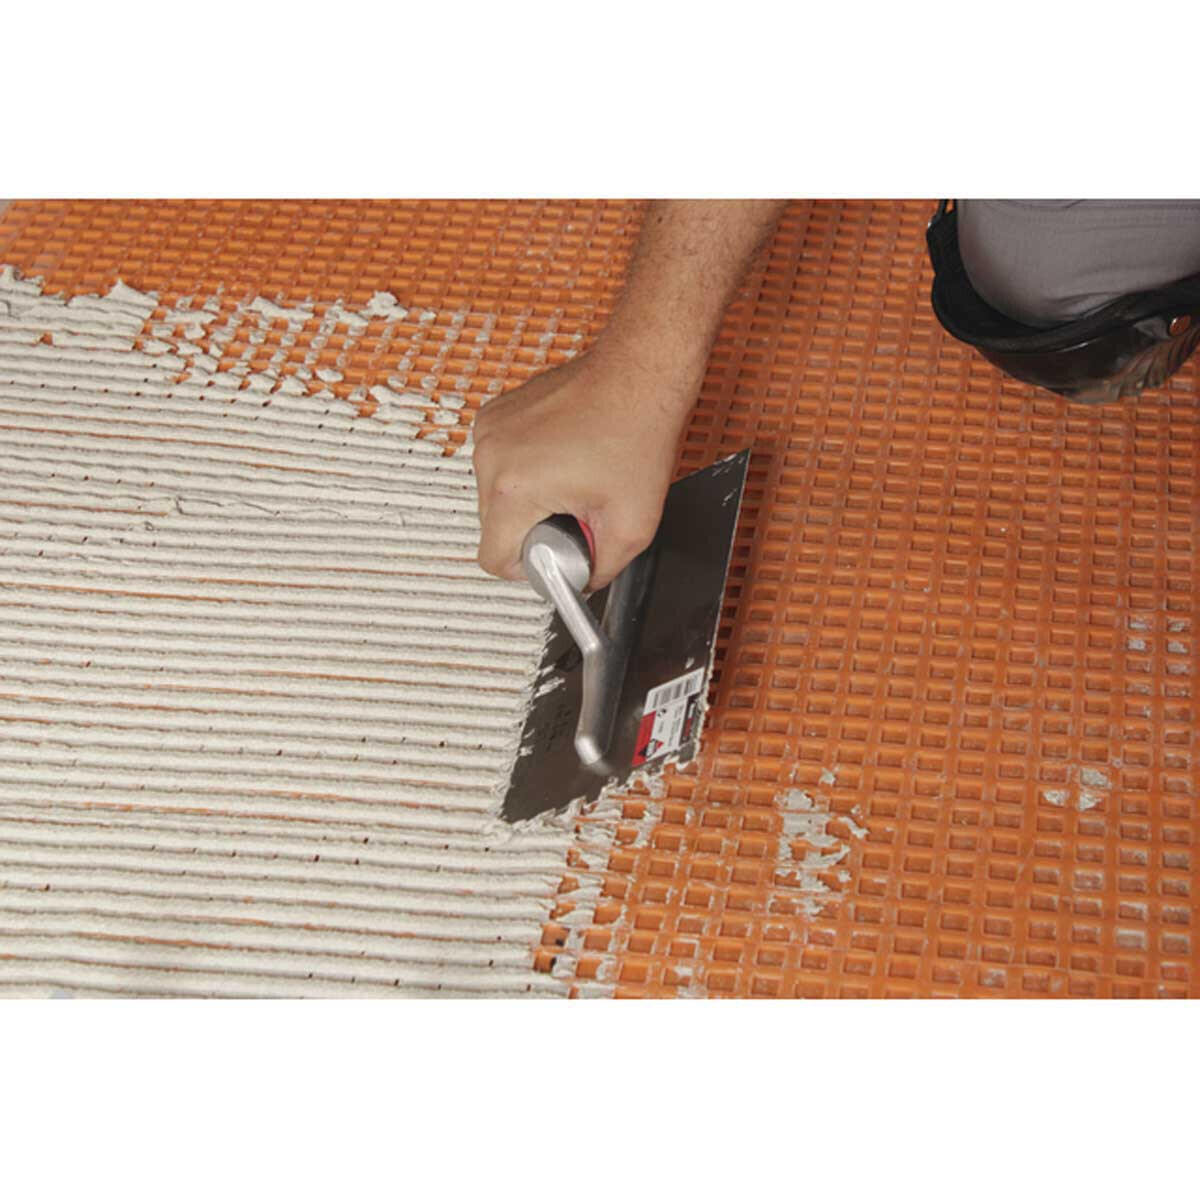 Rubi Notched Trowels for Schluter Uncoupling Membrane